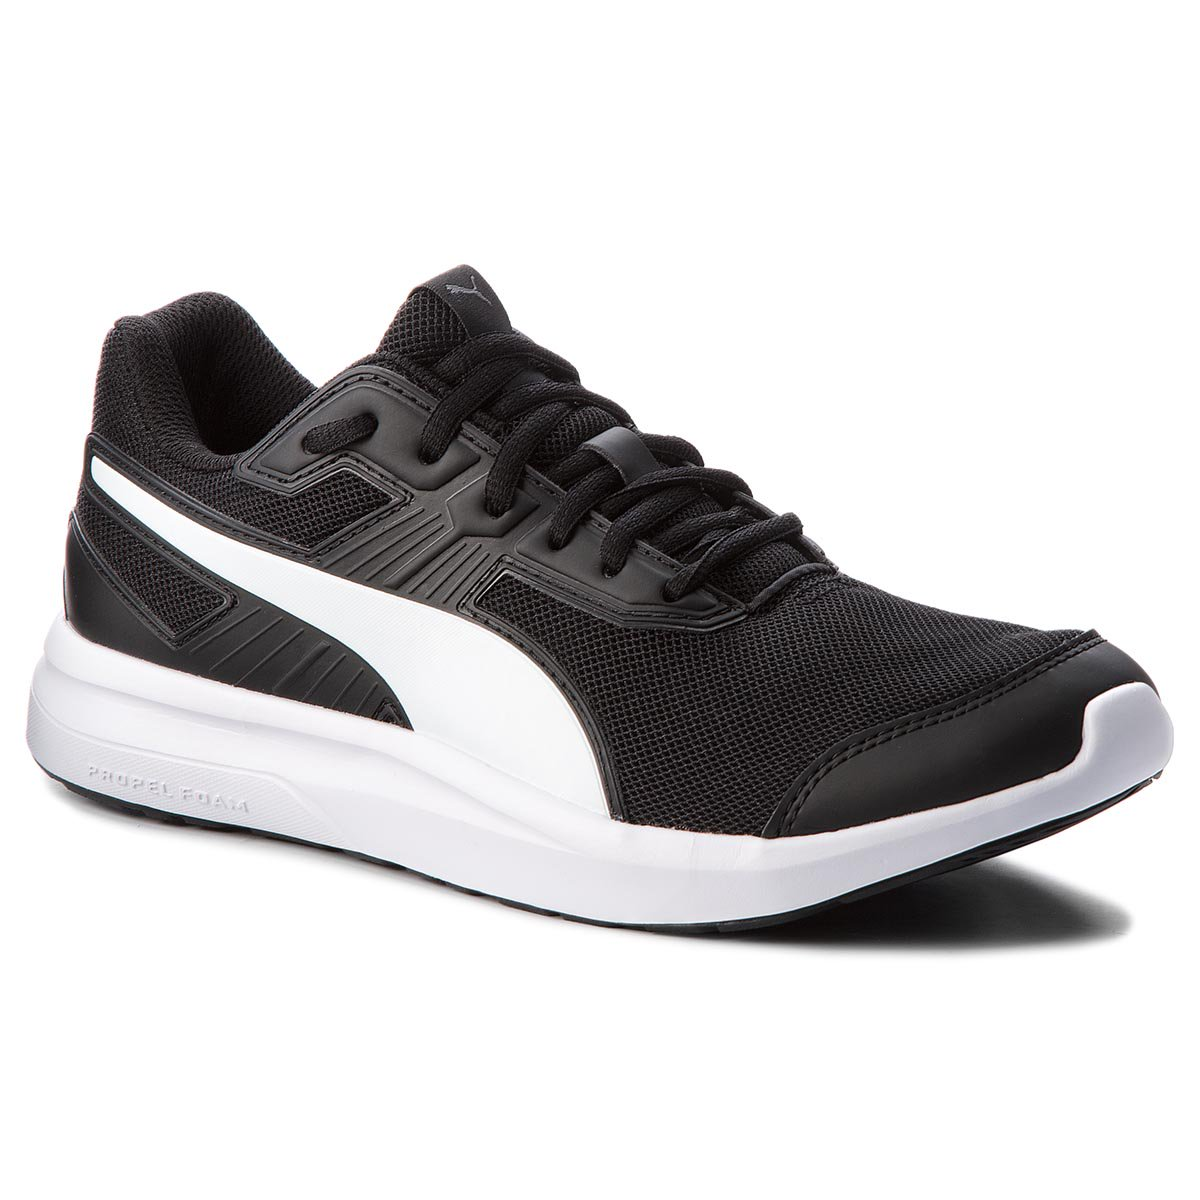 Sneakersy PUMA – Escaper Mesh 364307 01 Puma Black/Puma White